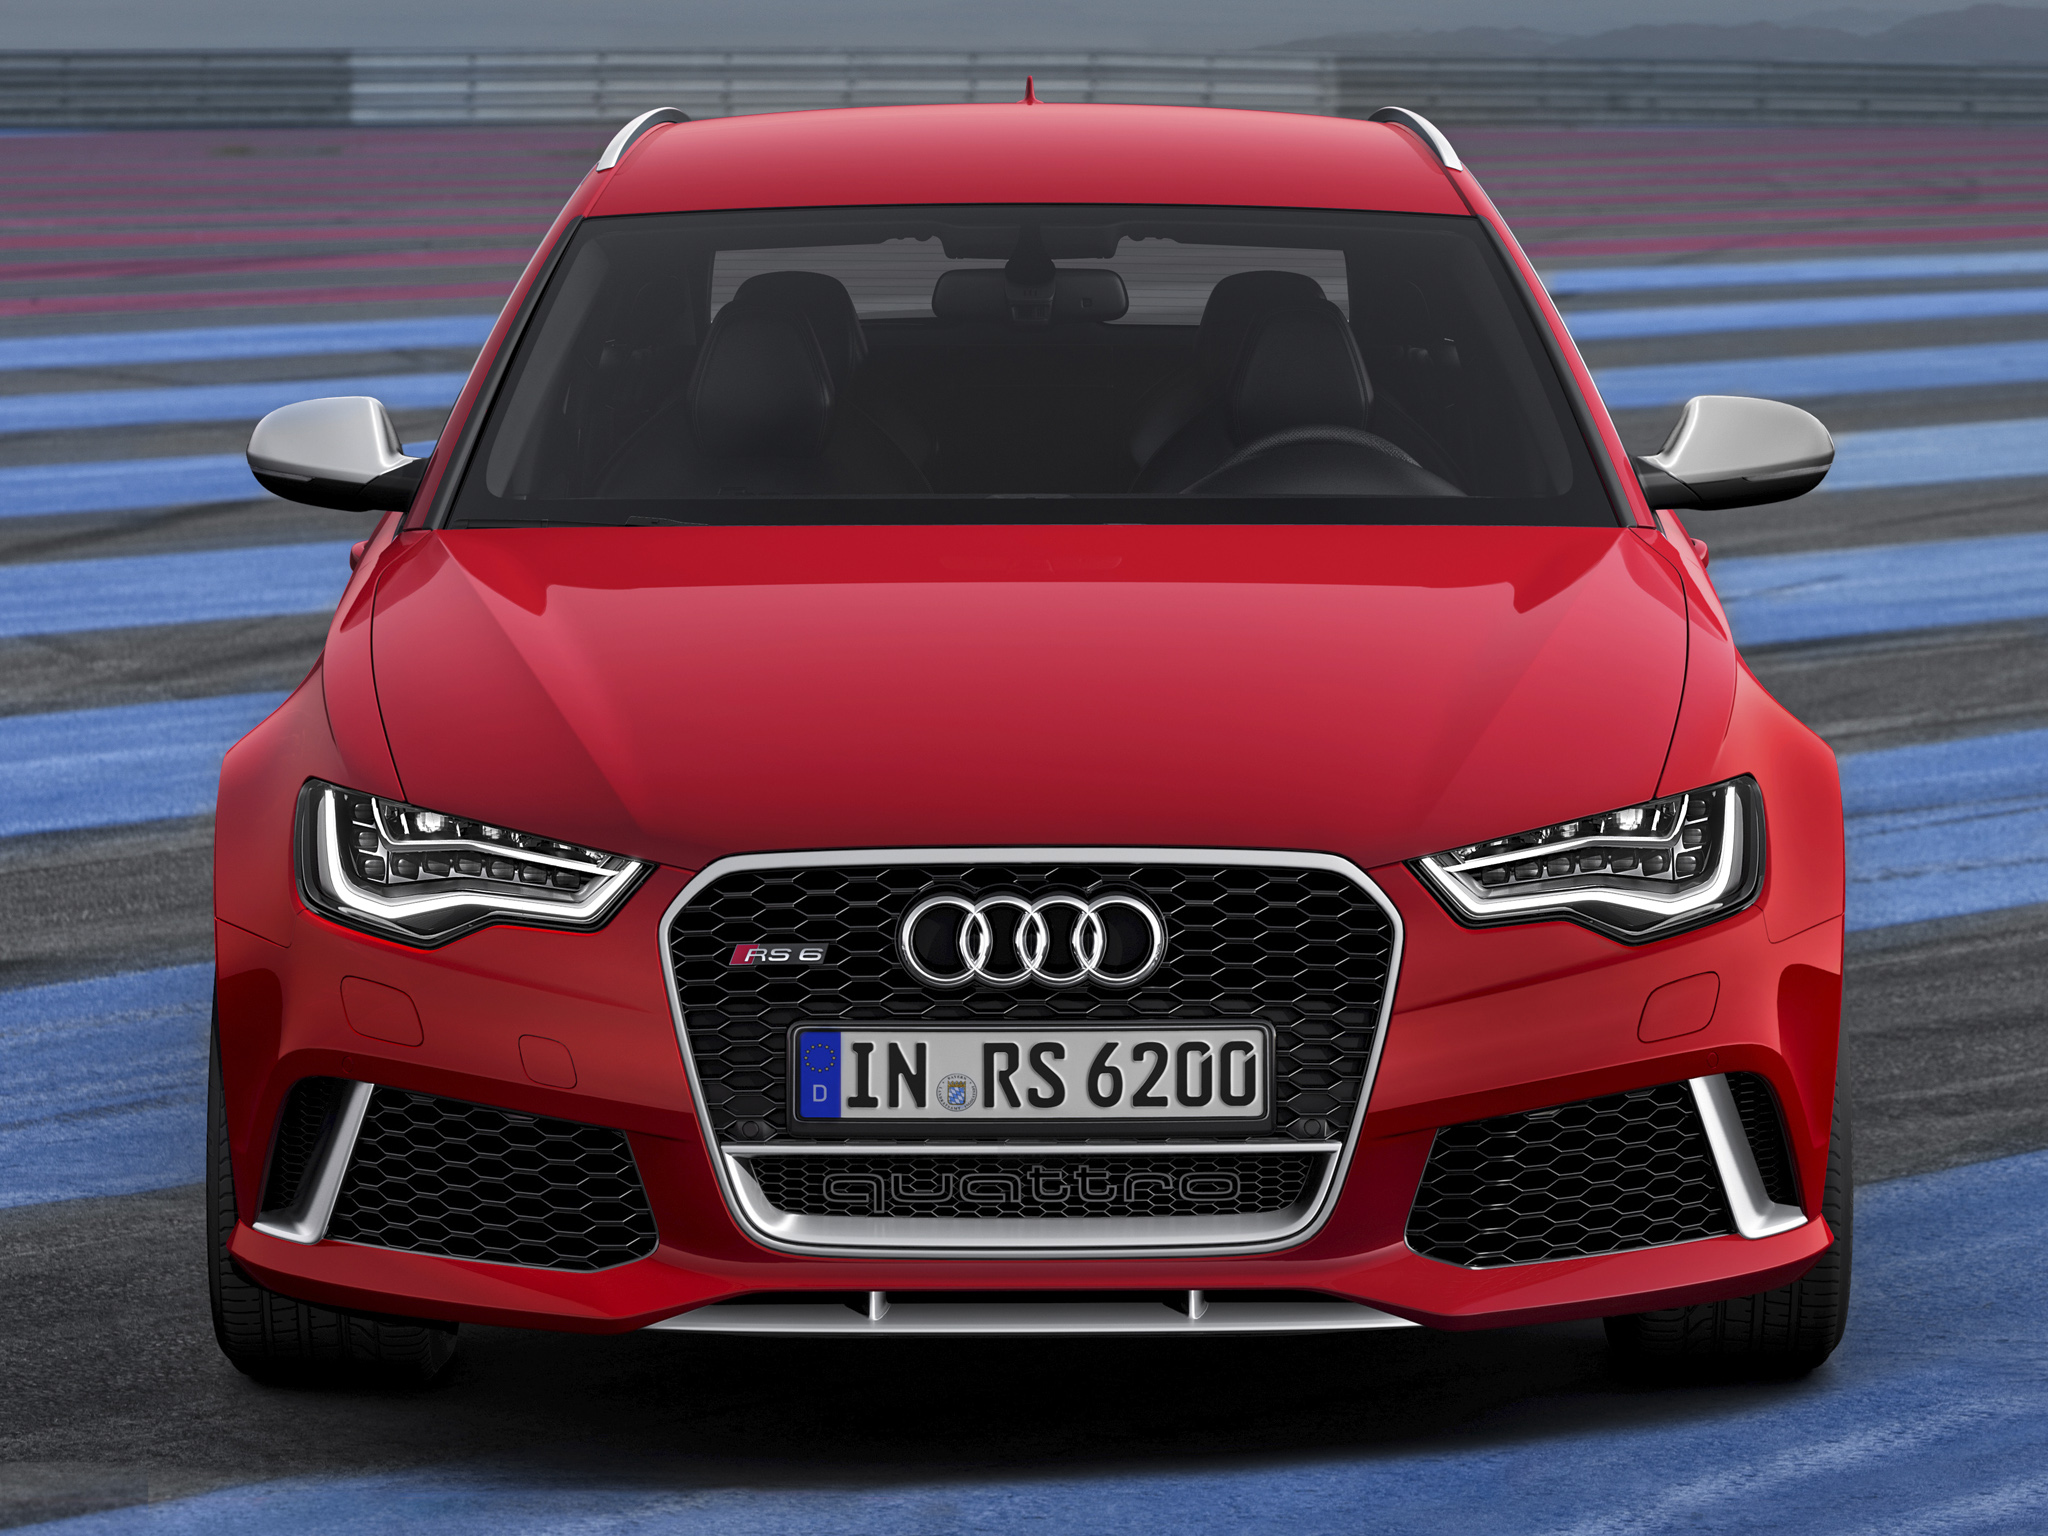 2013 audi rs6 avant gets unexpected unveiling. Black Bedroom Furniture Sets. Home Design Ideas